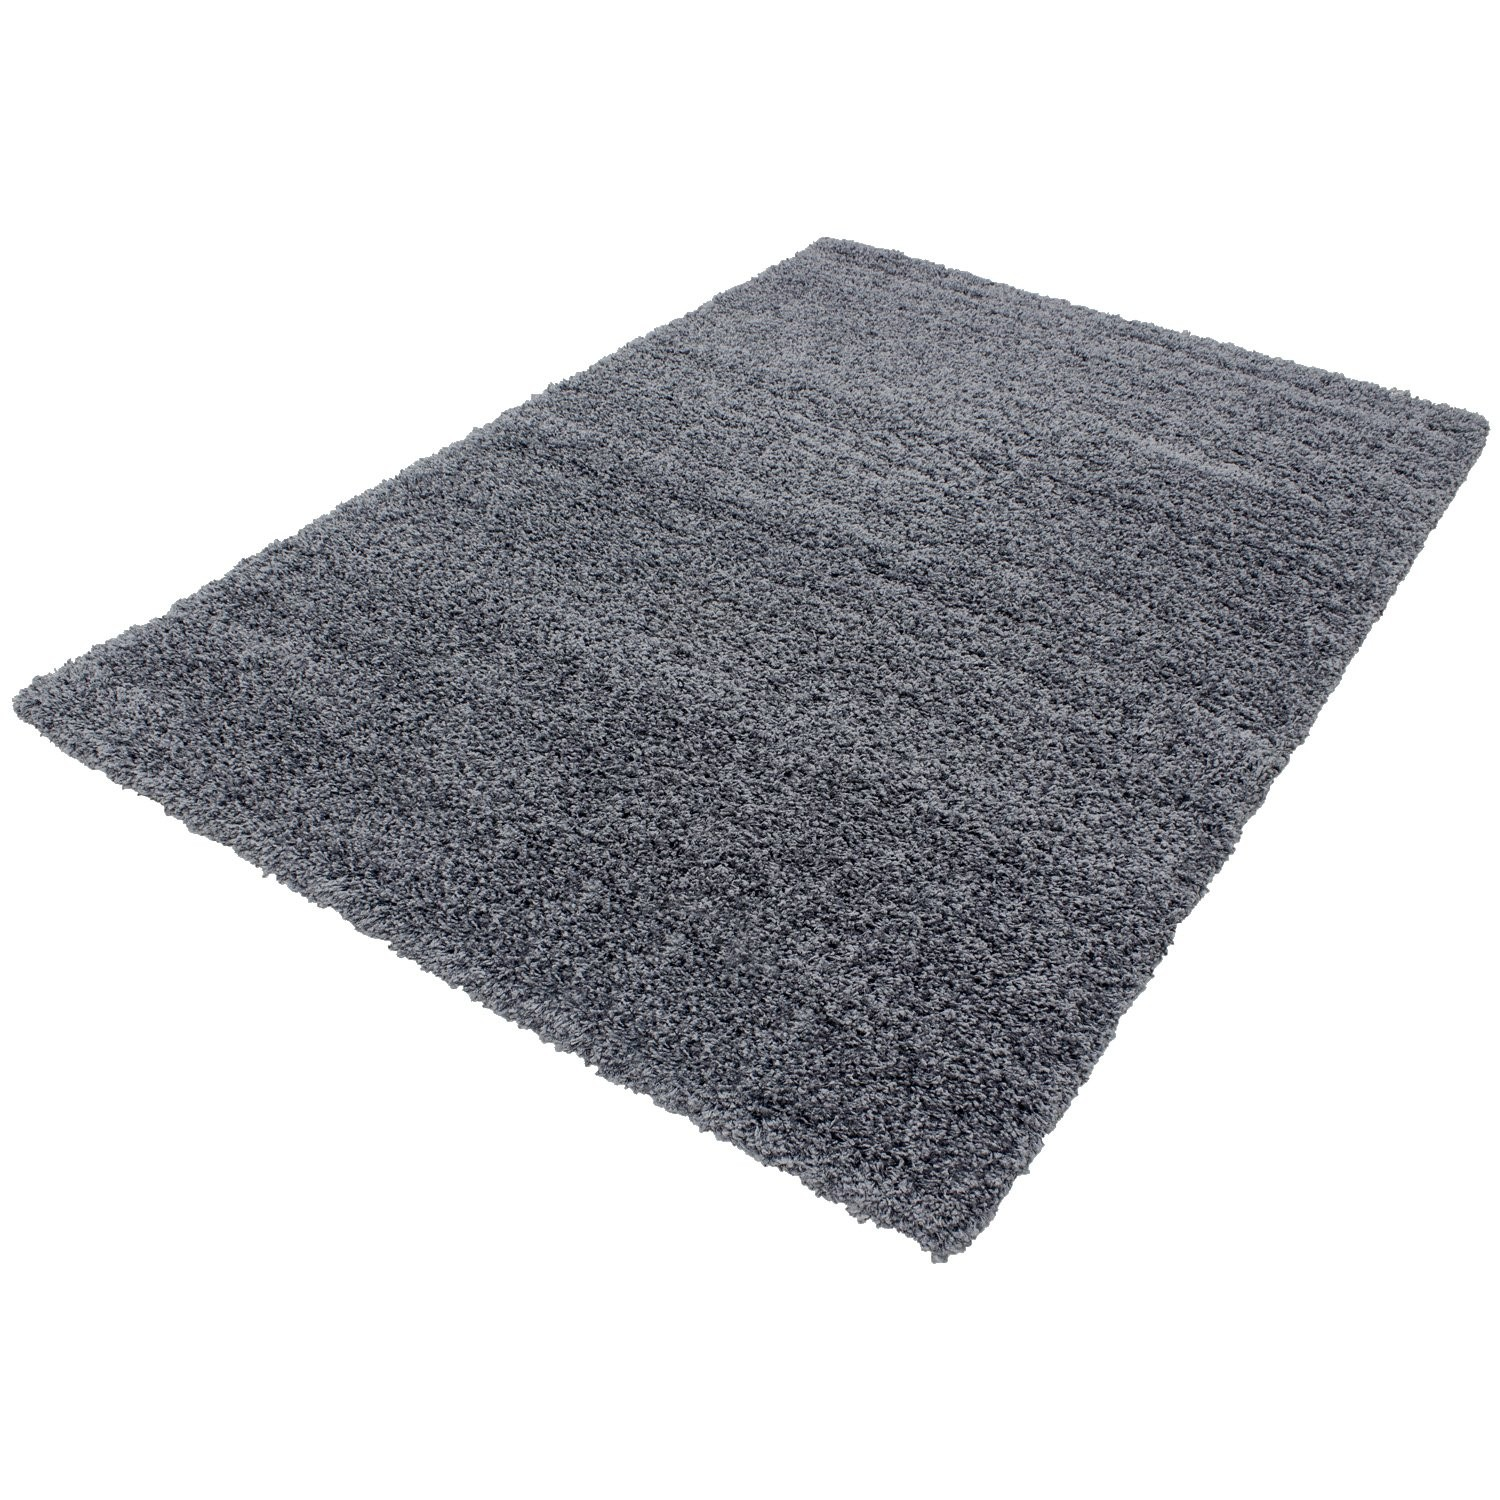 tapis shaggy gris moderne tapis design uni en polypropyl ne vasco. Black Bedroom Furniture Sets. Home Design Ideas